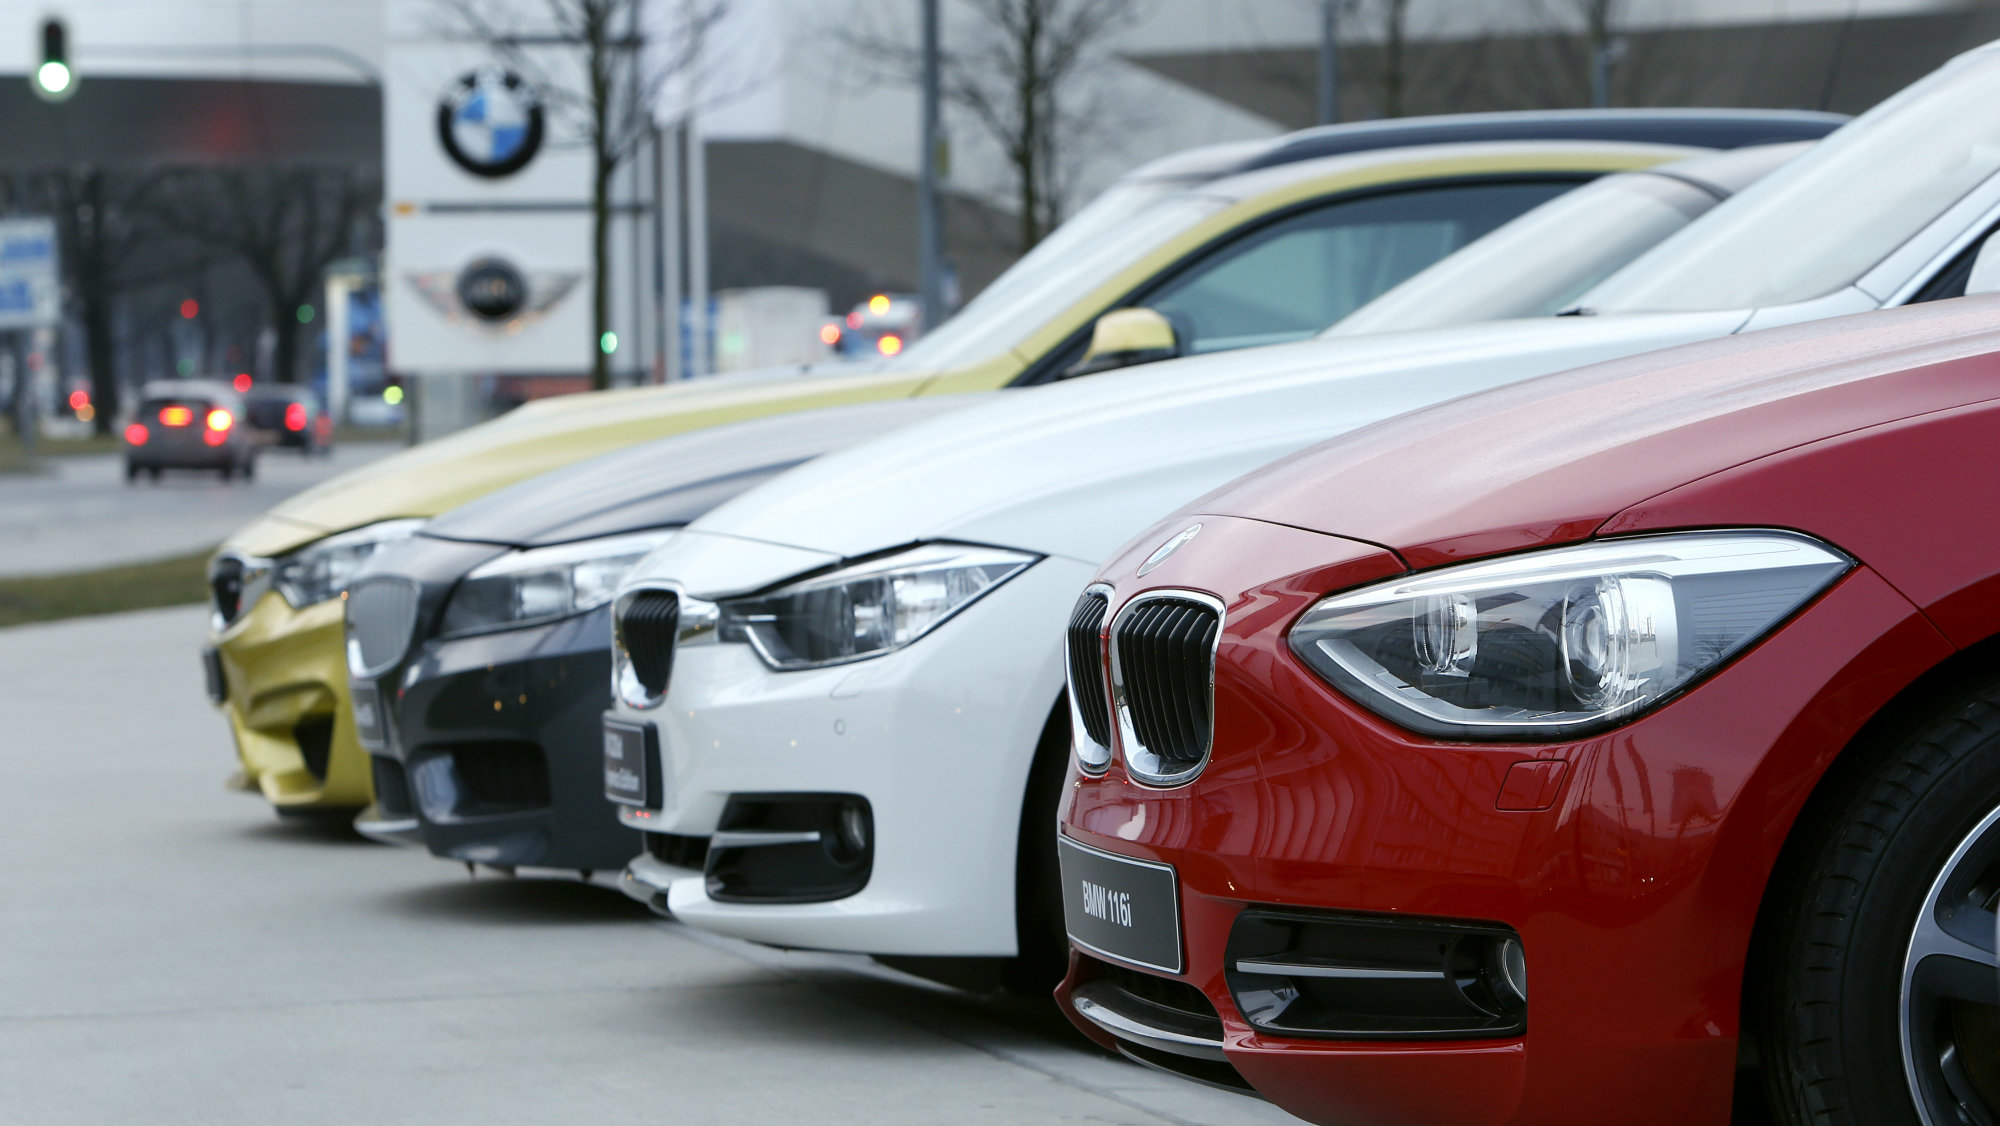 BMWu0027s In Different Colours Are Placed Near The Headquarters Of German  Luxury Car Maker BMW In